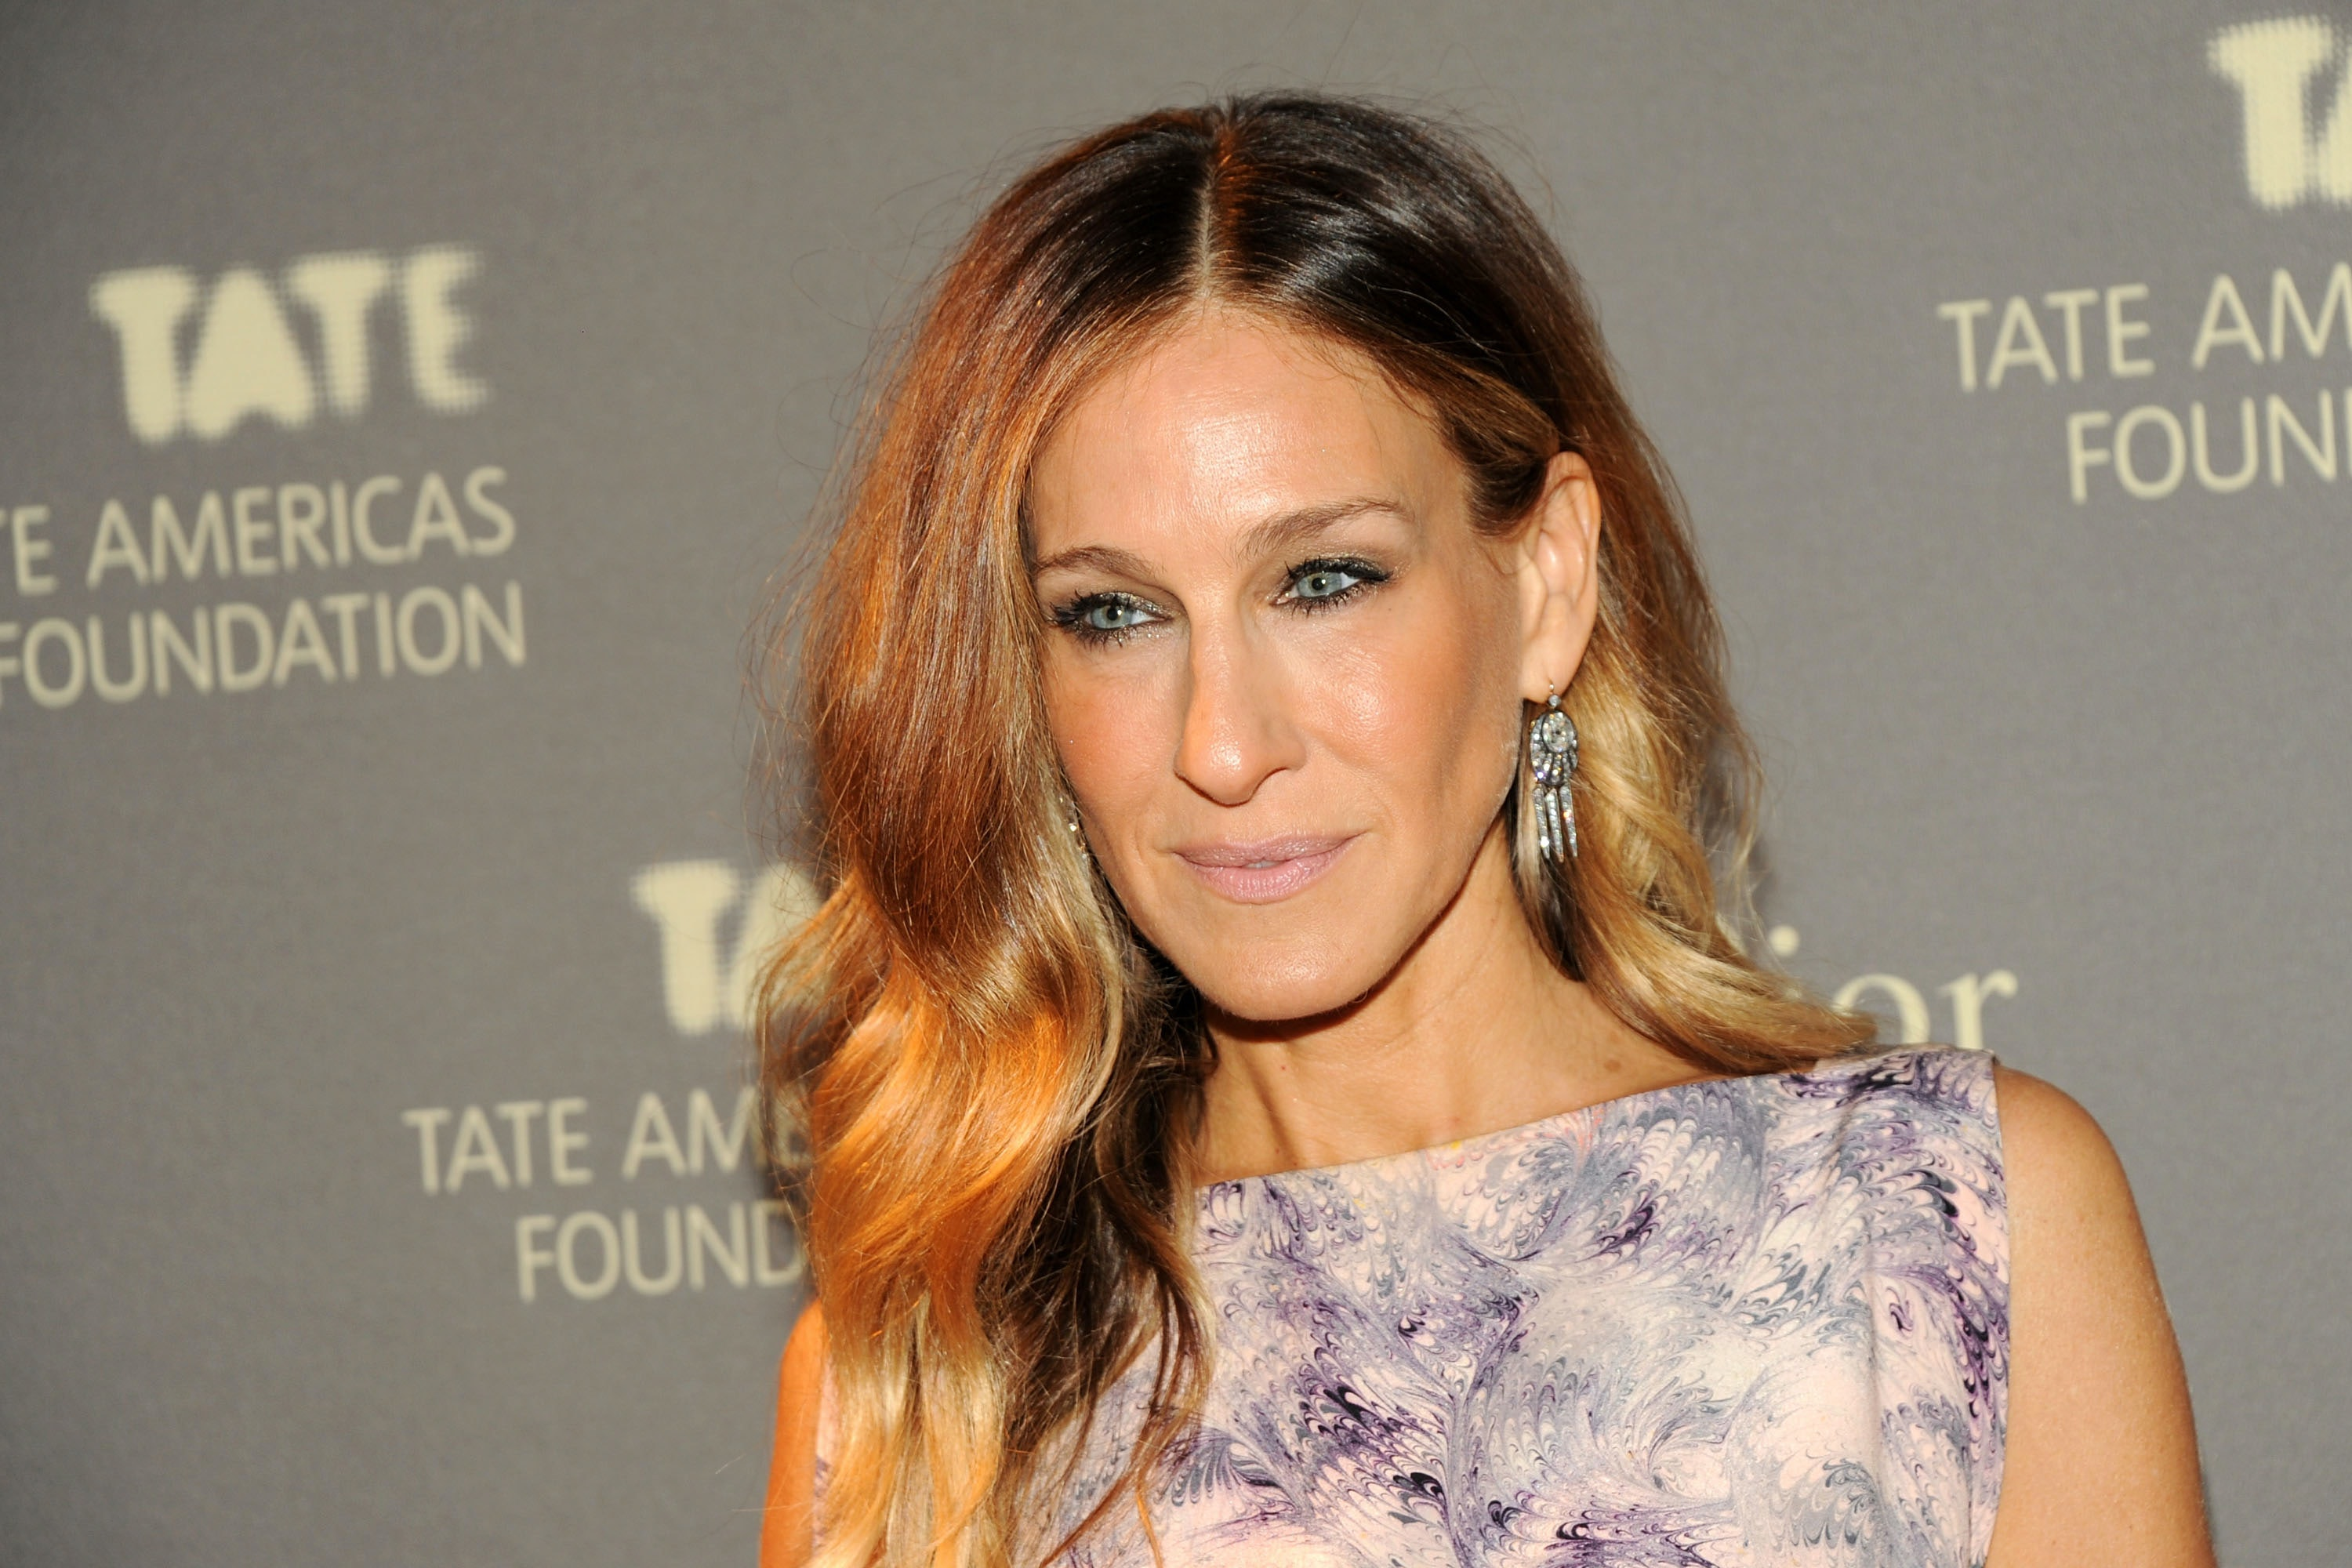 You can finally buy Sarah Jessica Parker's shoes on Amazon